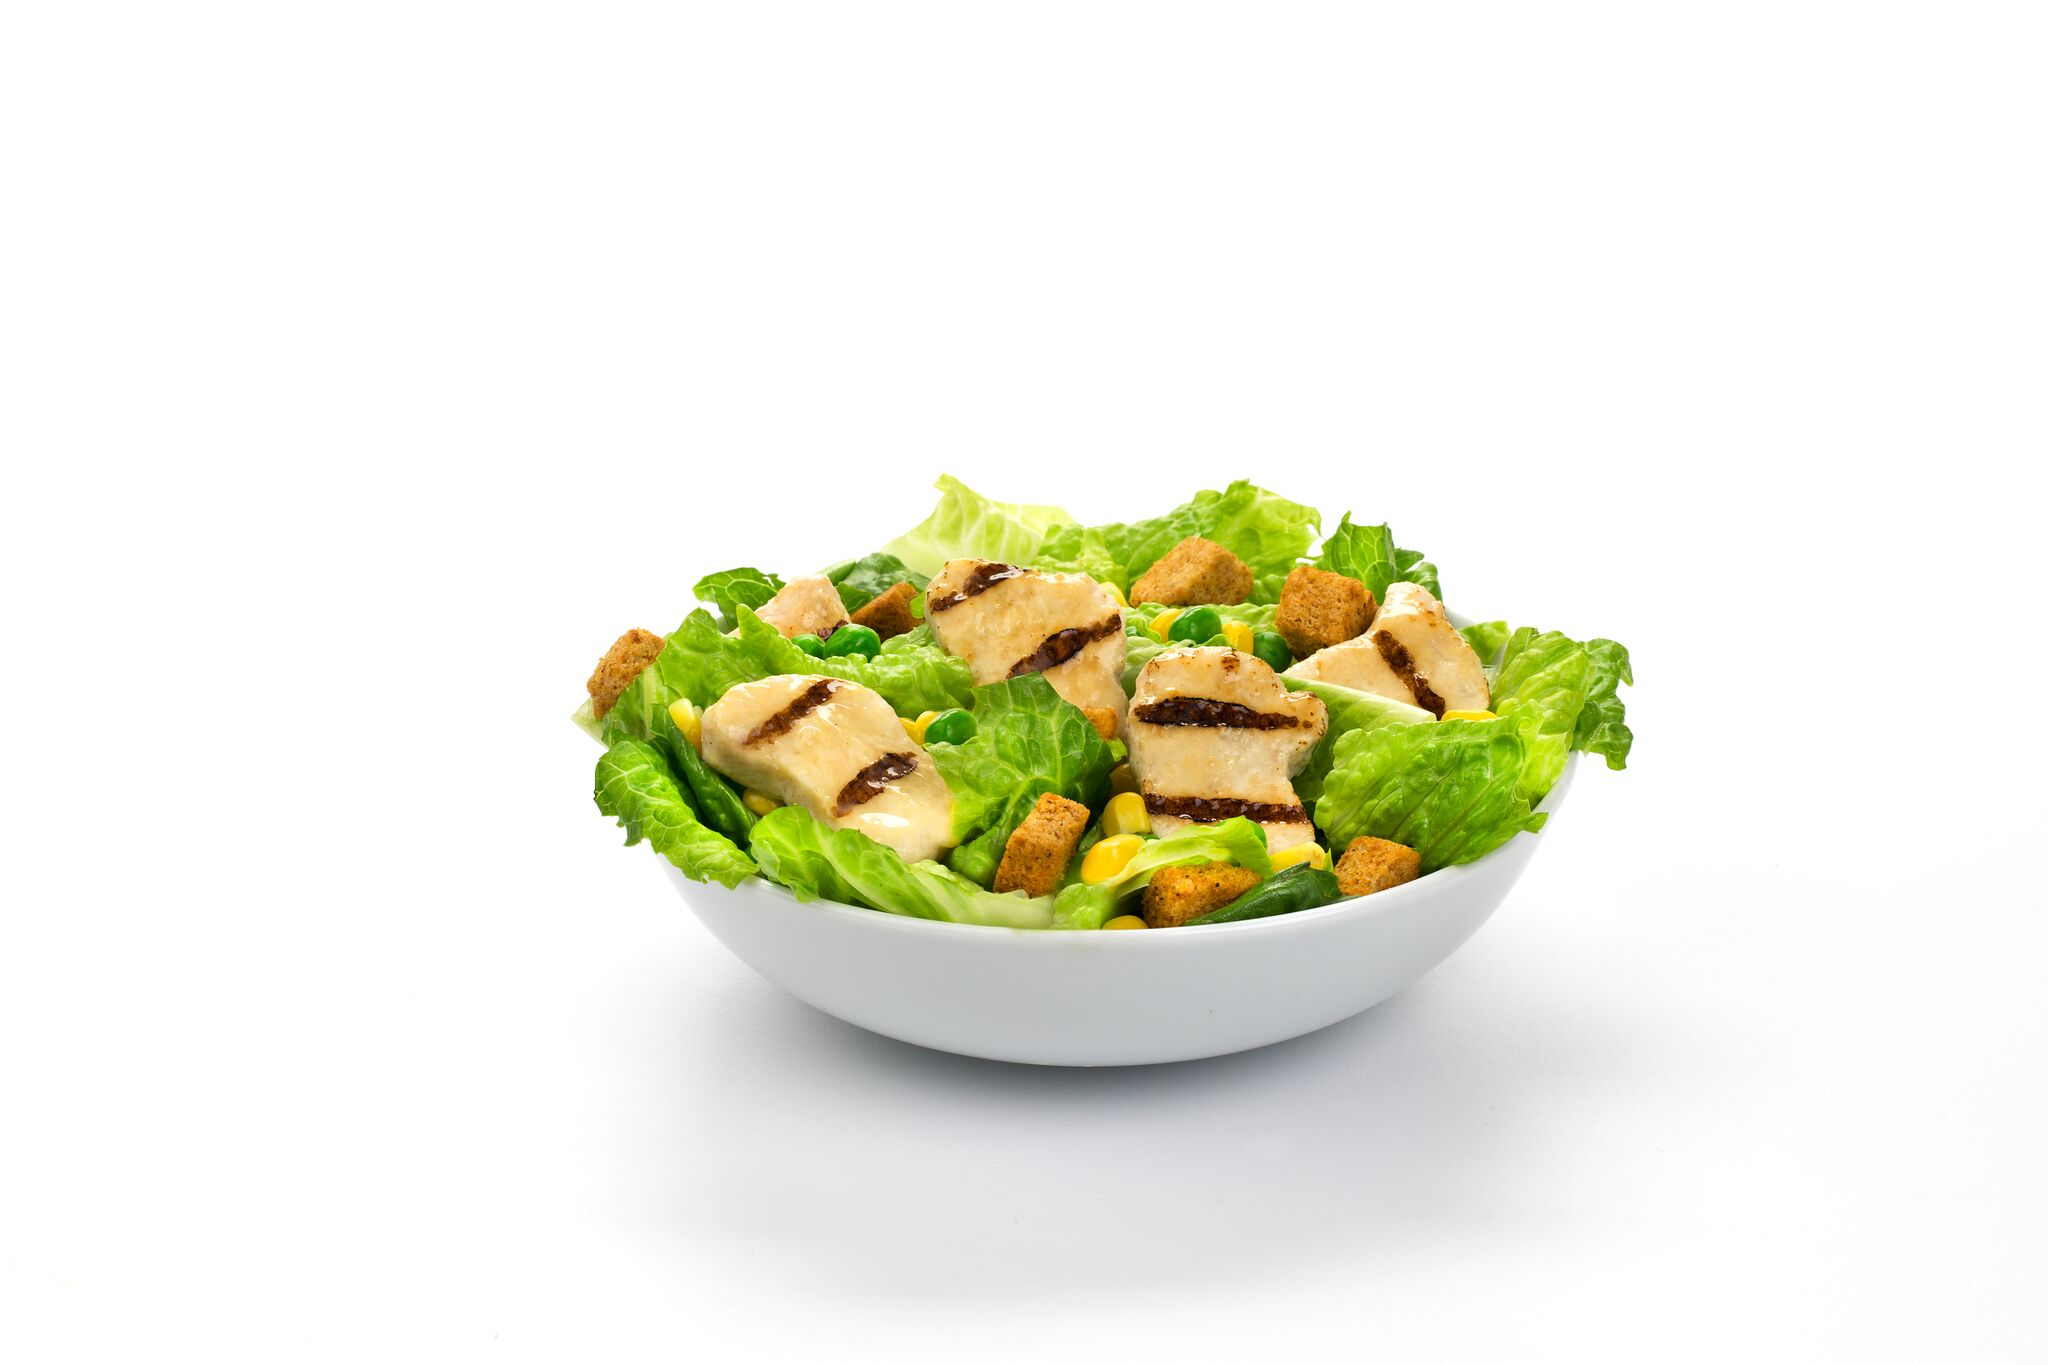 Honey Mustard Chicken Salad without dressing_PLATED_preview.jpeg